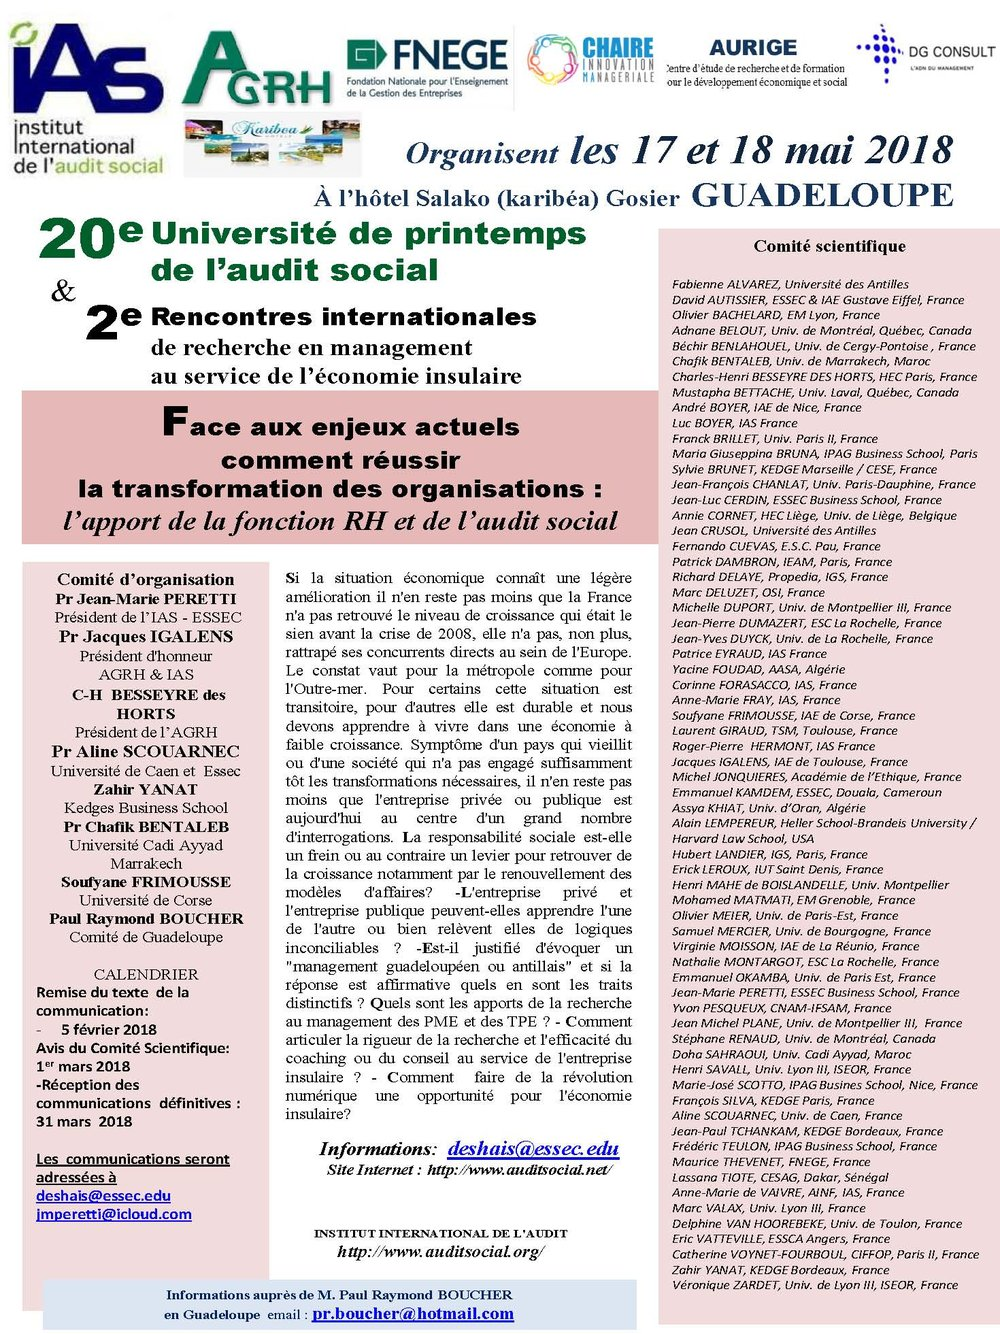 IAS 20eme université de printemps audit social.jpg